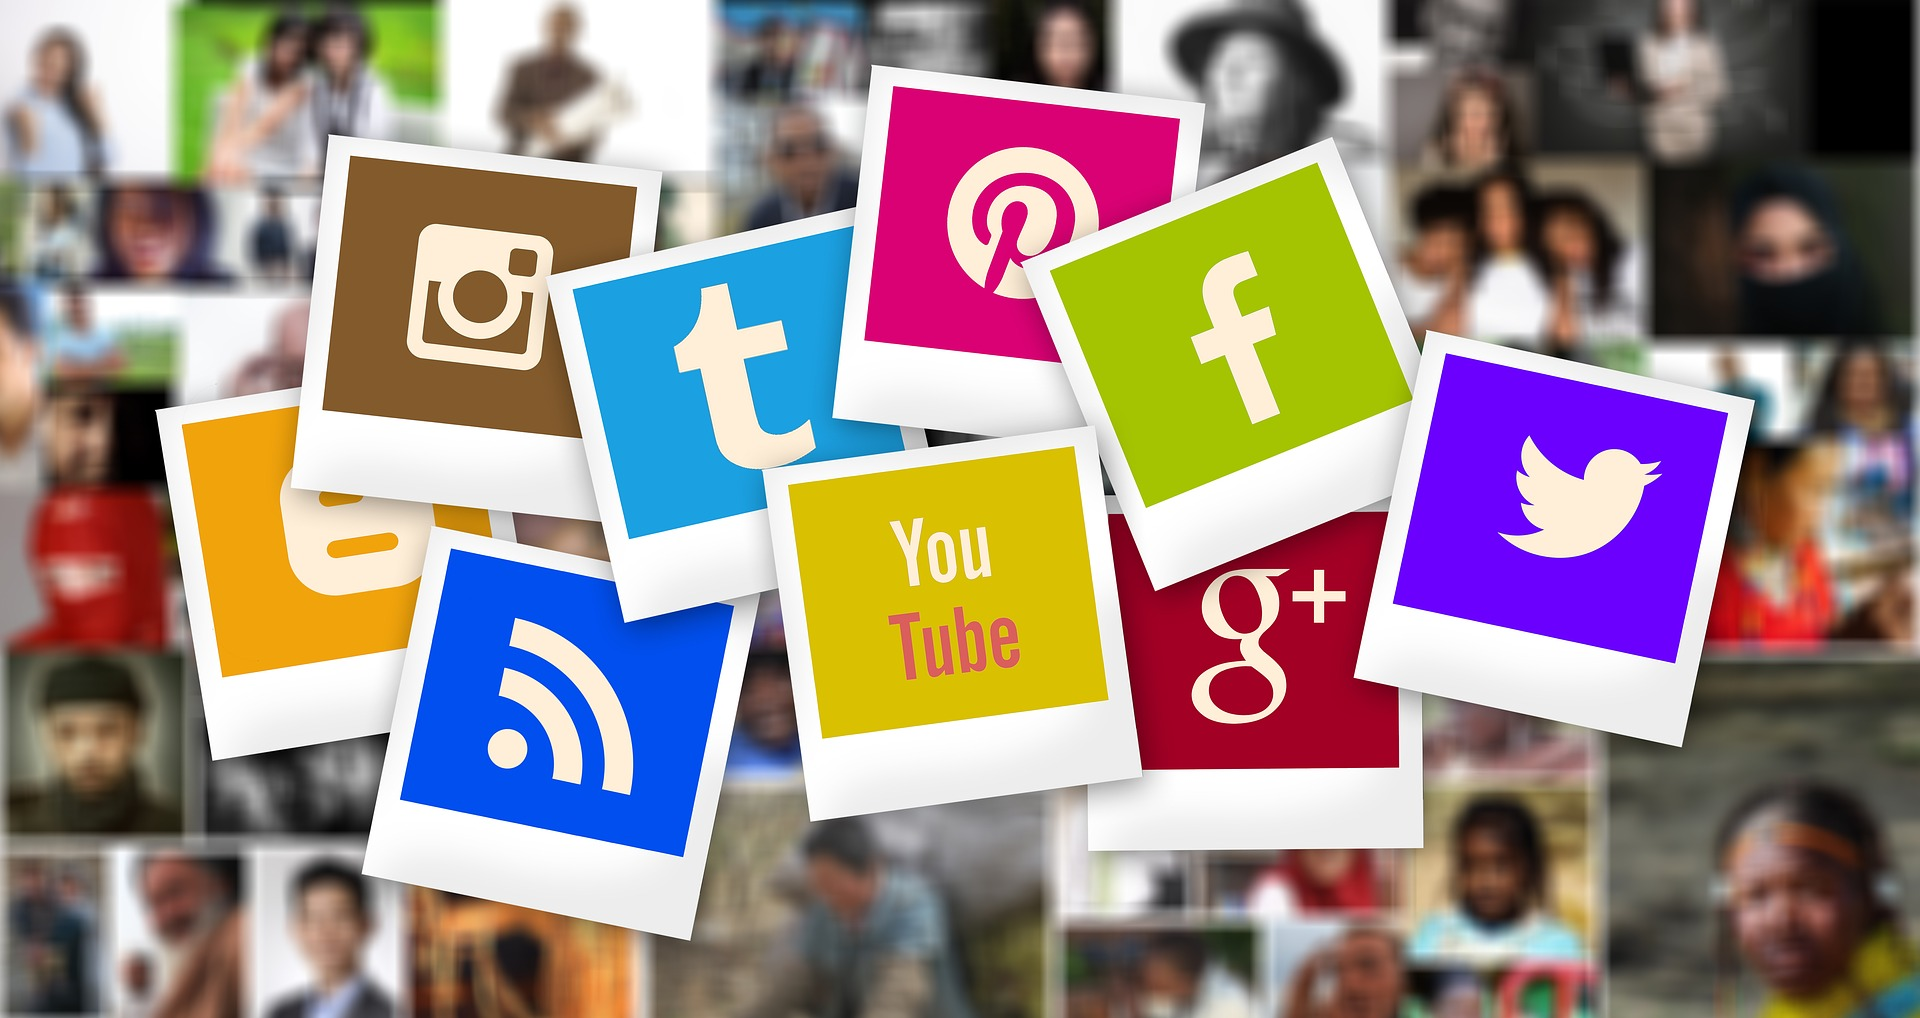 human 3175027 1920 - Top Tips To Culminate The Response To Your Social Media Posts